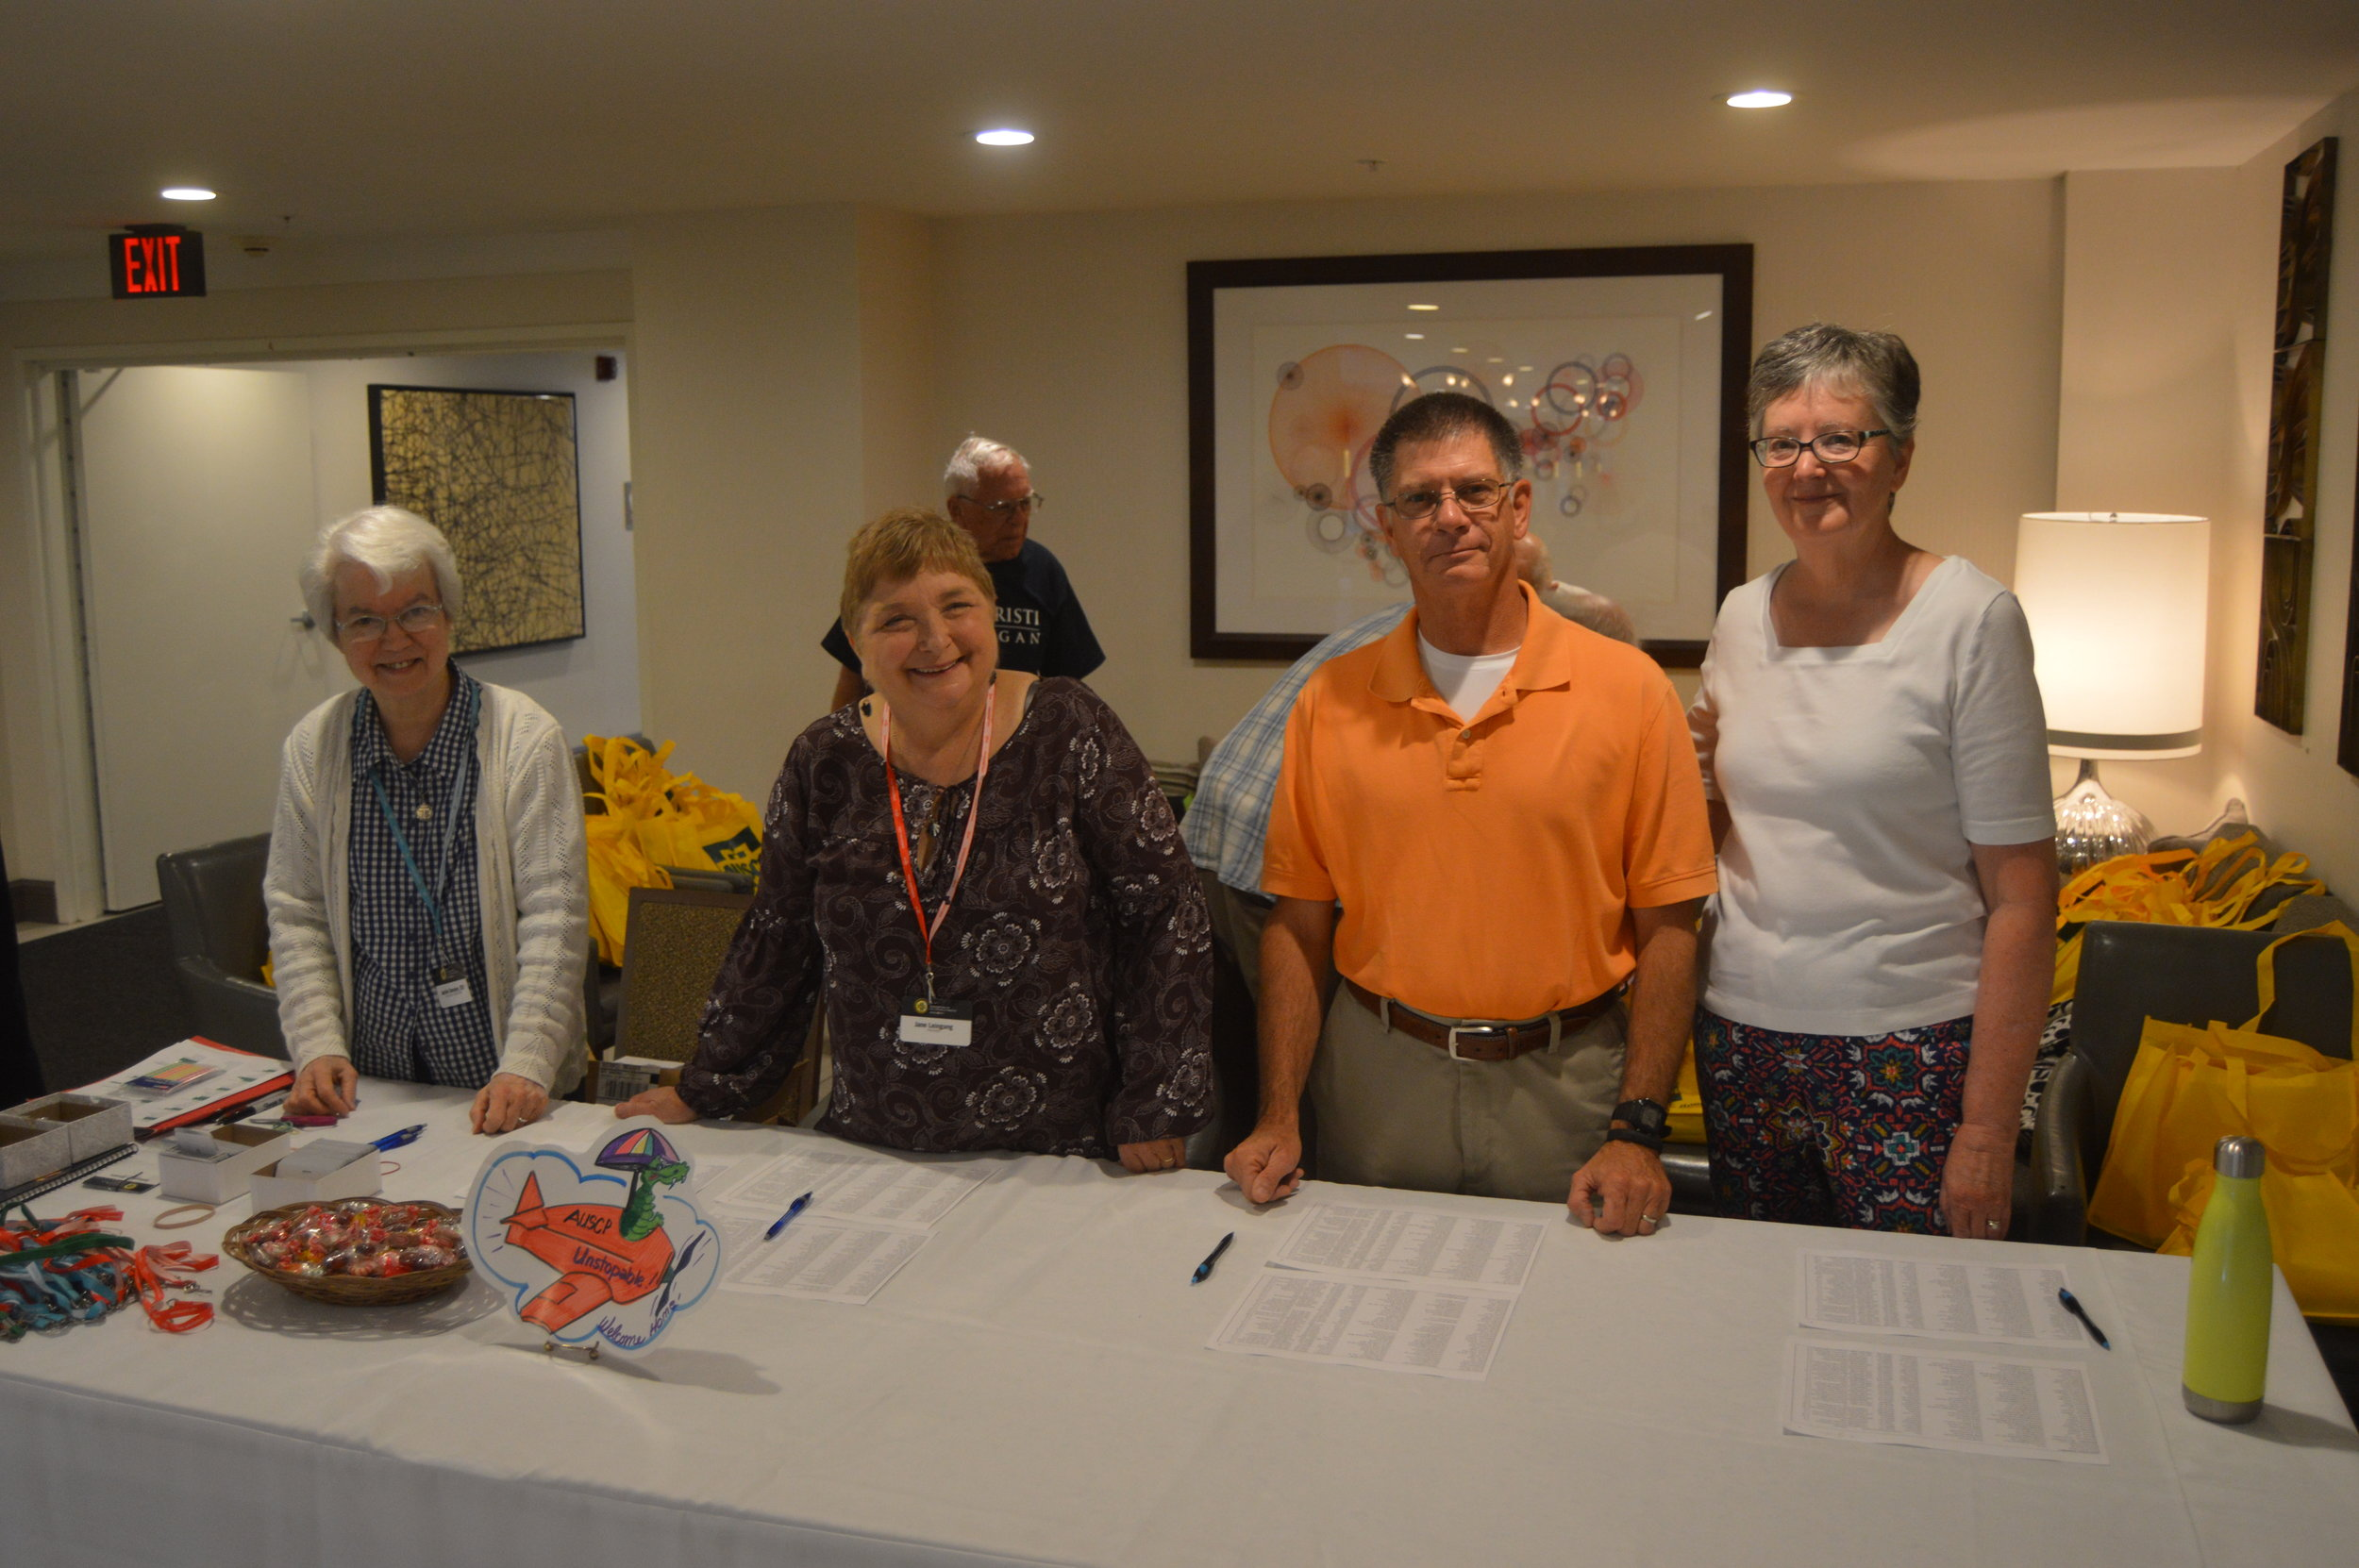 Sister Jackie Doepker, Jane Leingang, Scott Meierotto and Lesa Meierotto welcome arrivals at the registration table.